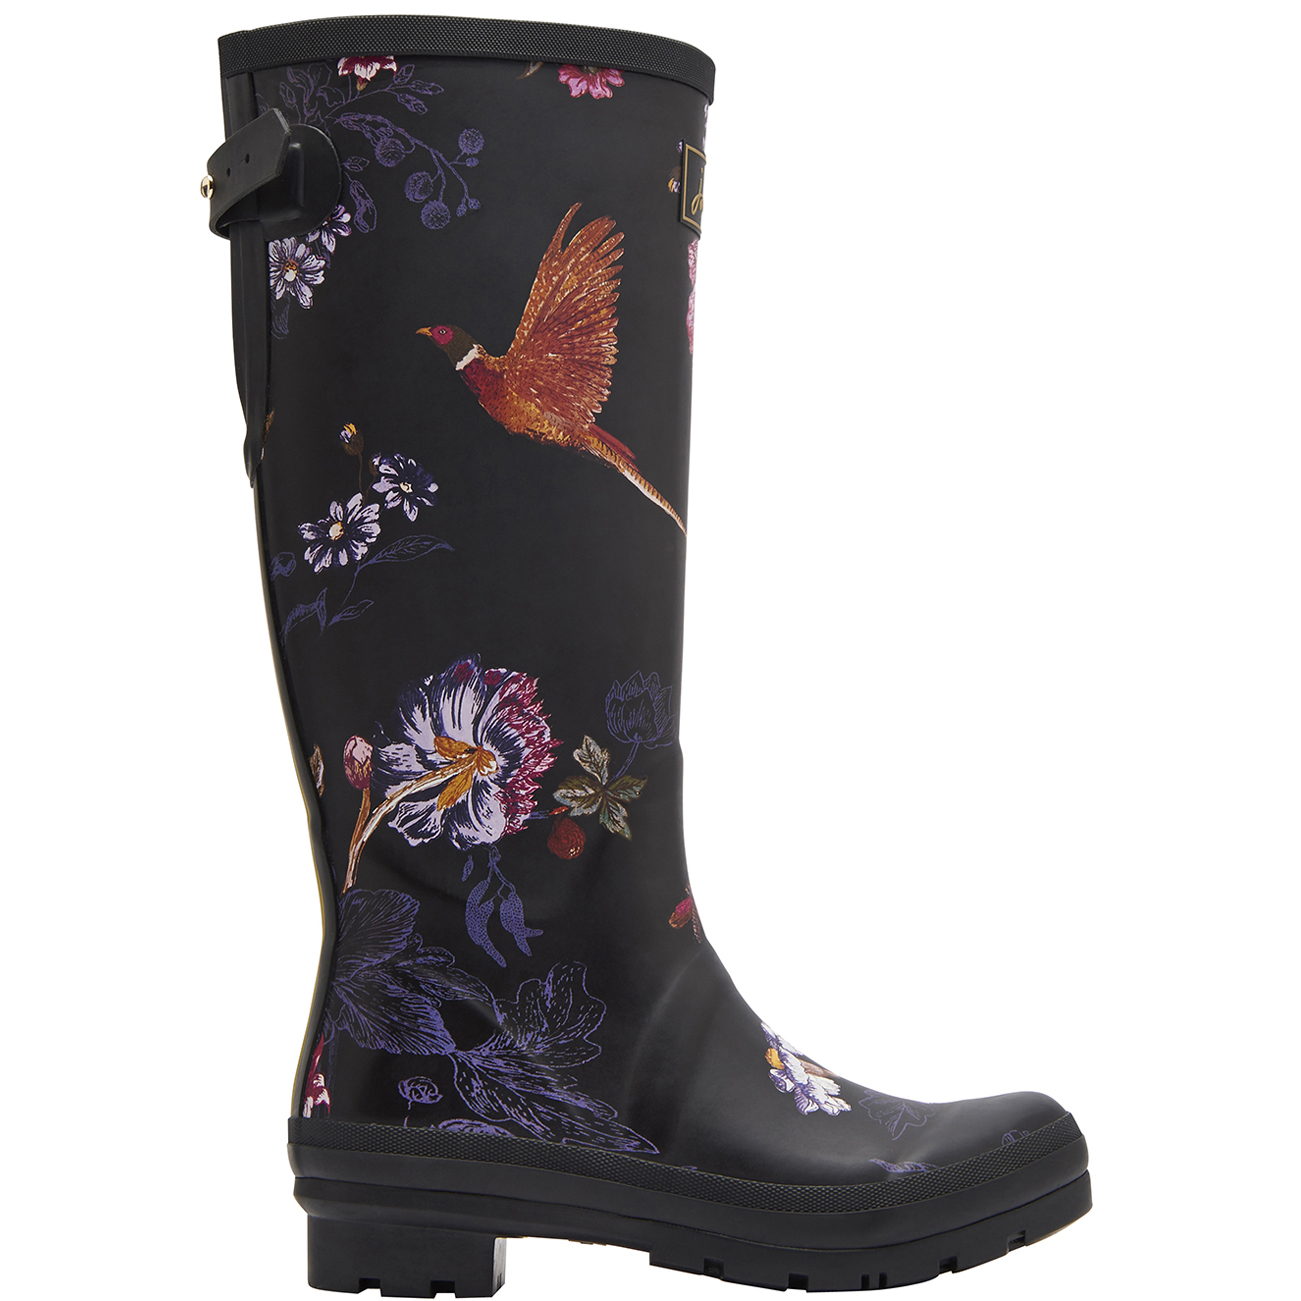 Joules Printed Wellies Boots